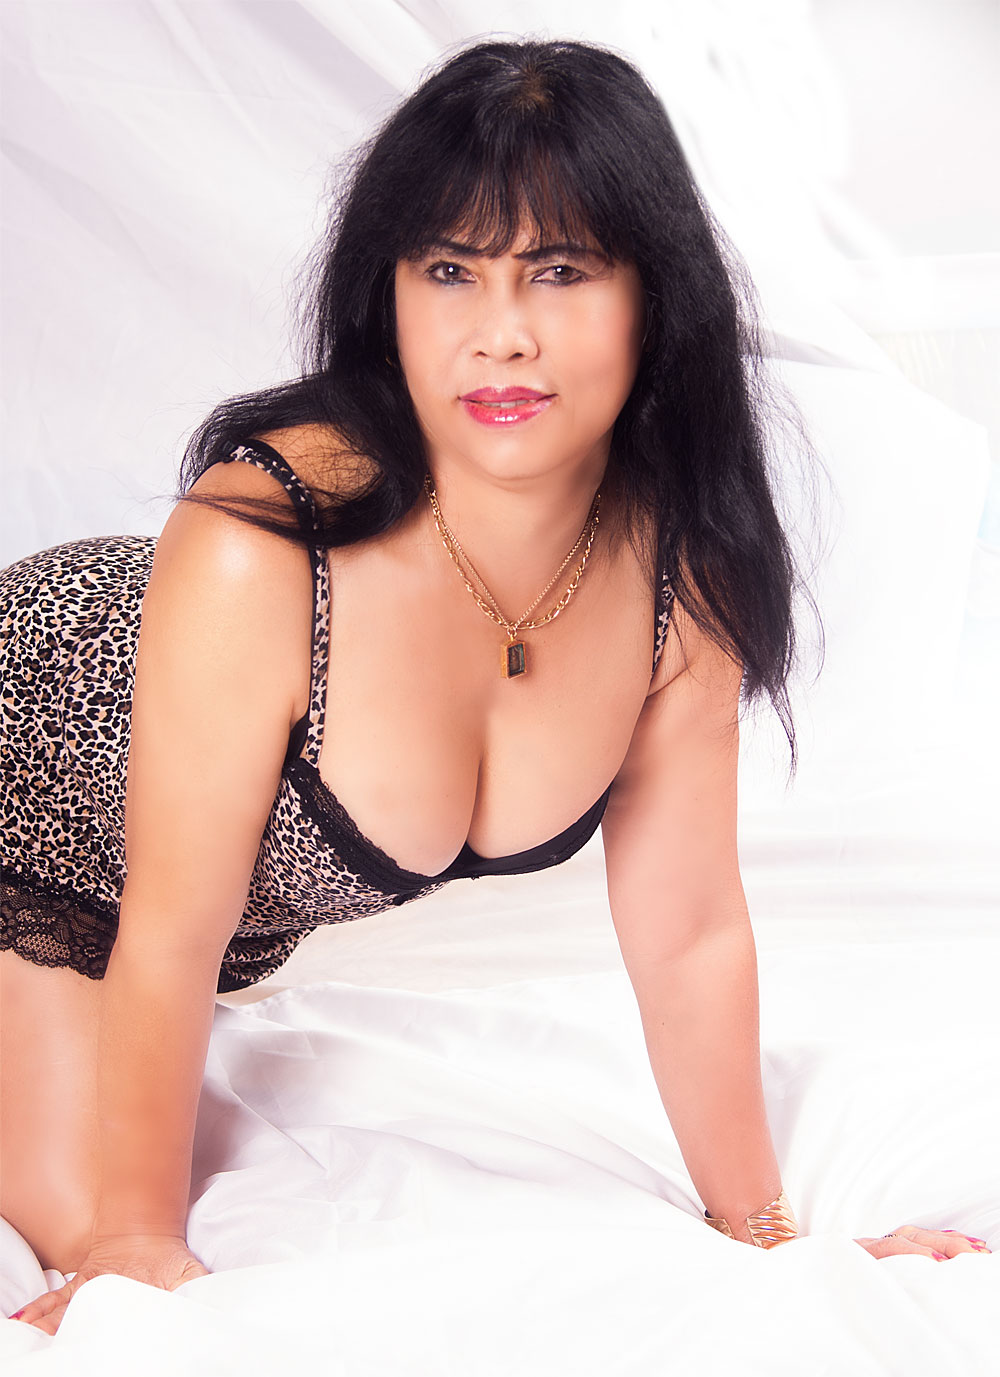 massagepiger slagelse side escort